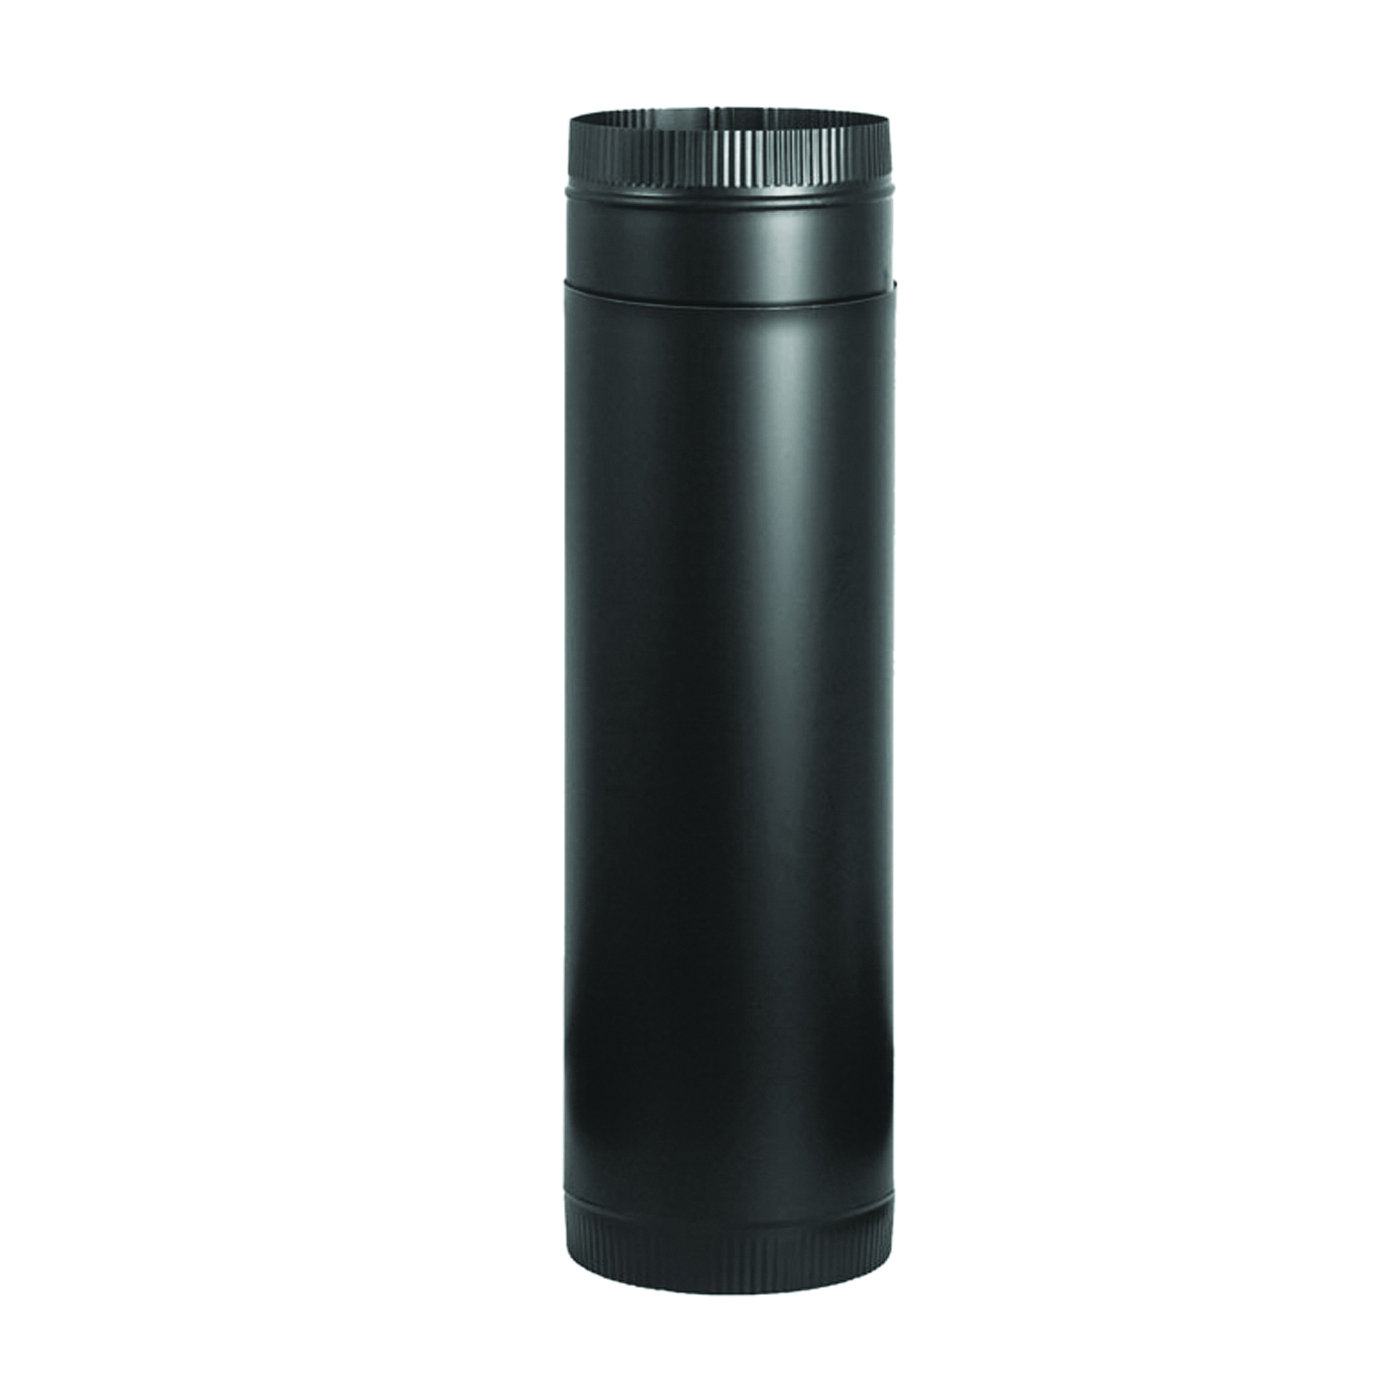 Picture of Imperial BM0124 Stove Pipe, 7 in Dia, Steel, Black